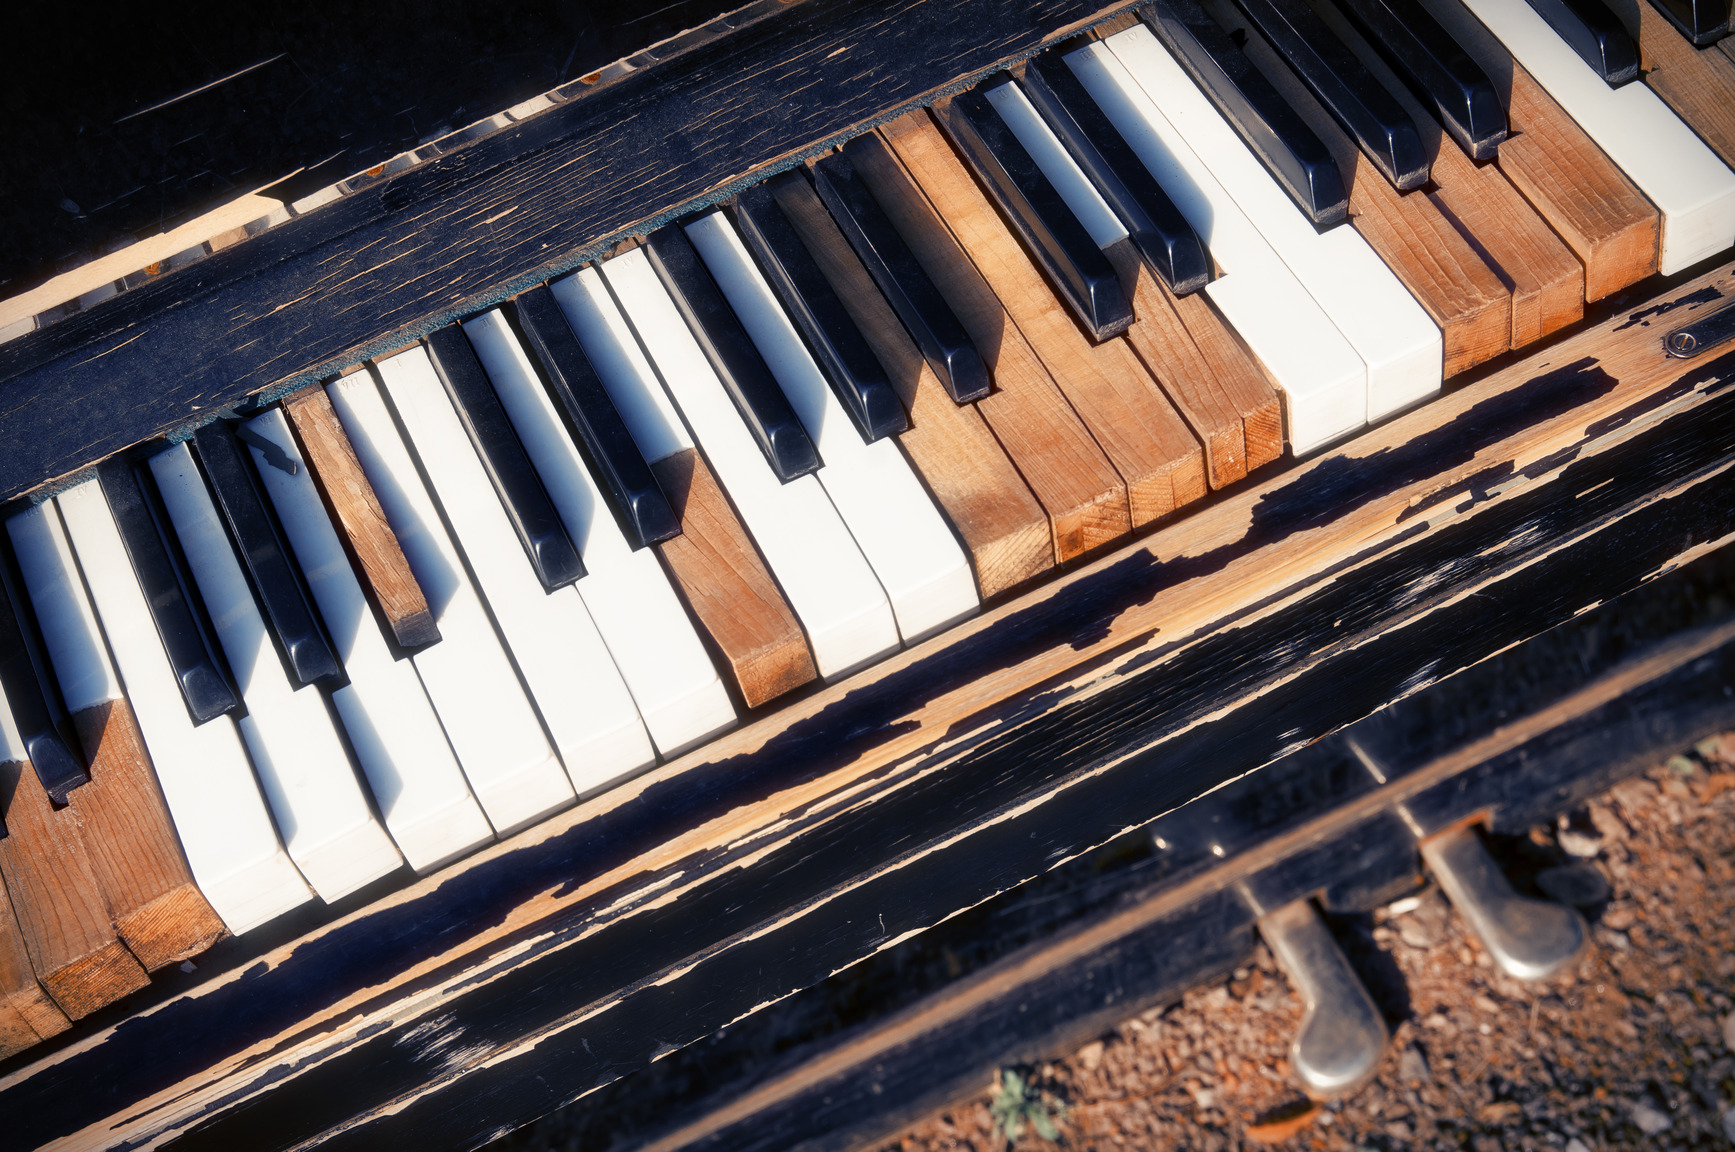 photodune-5032390-old-piano-m